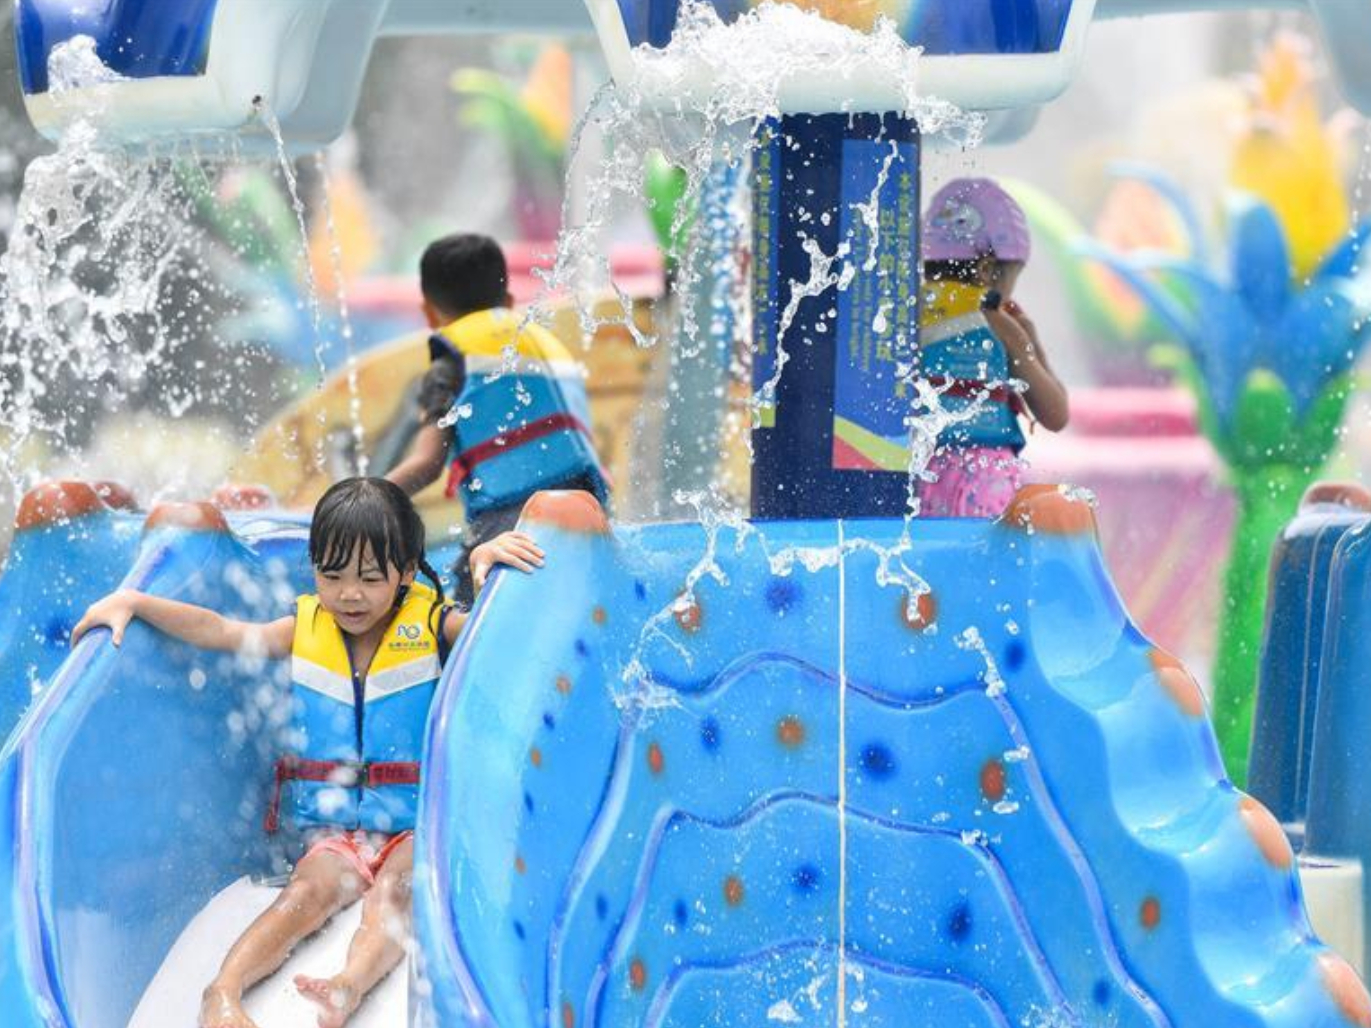 Guangzhou's Chimelong Water Park reopens with COVID-19 prevention measures